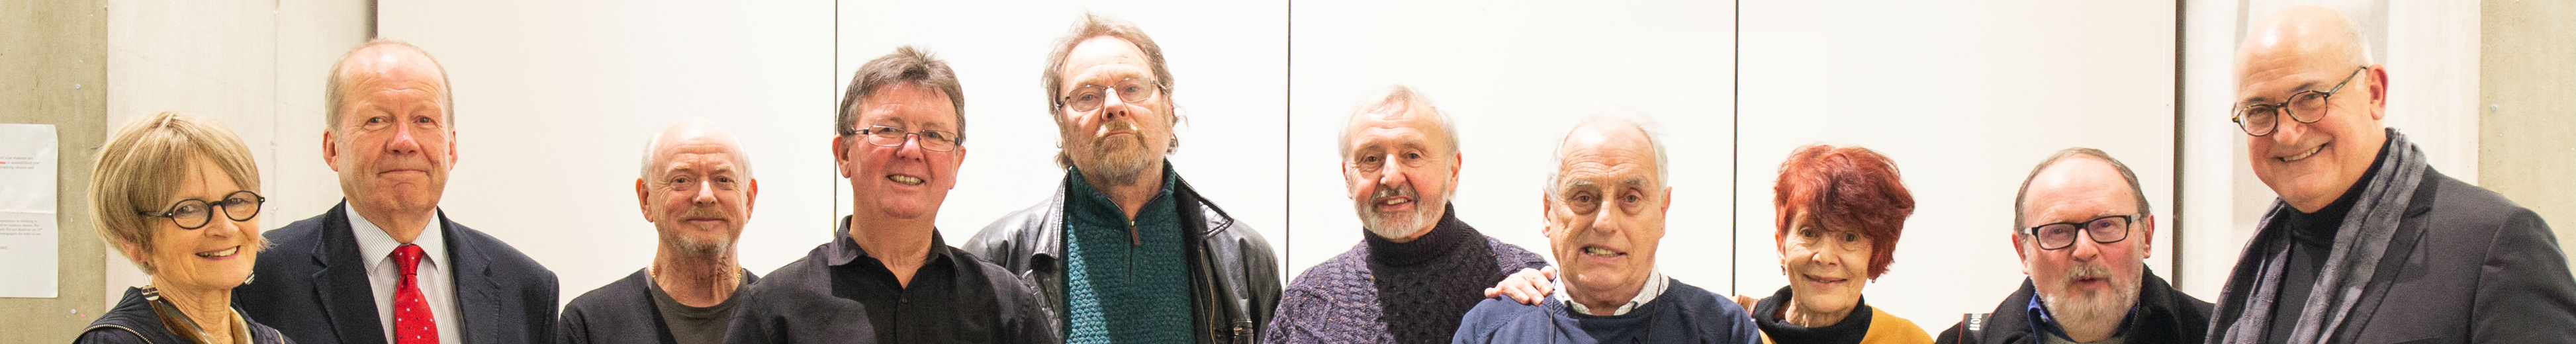 School of Art students from 1969 reunited for a special 50th anniversary exhibition